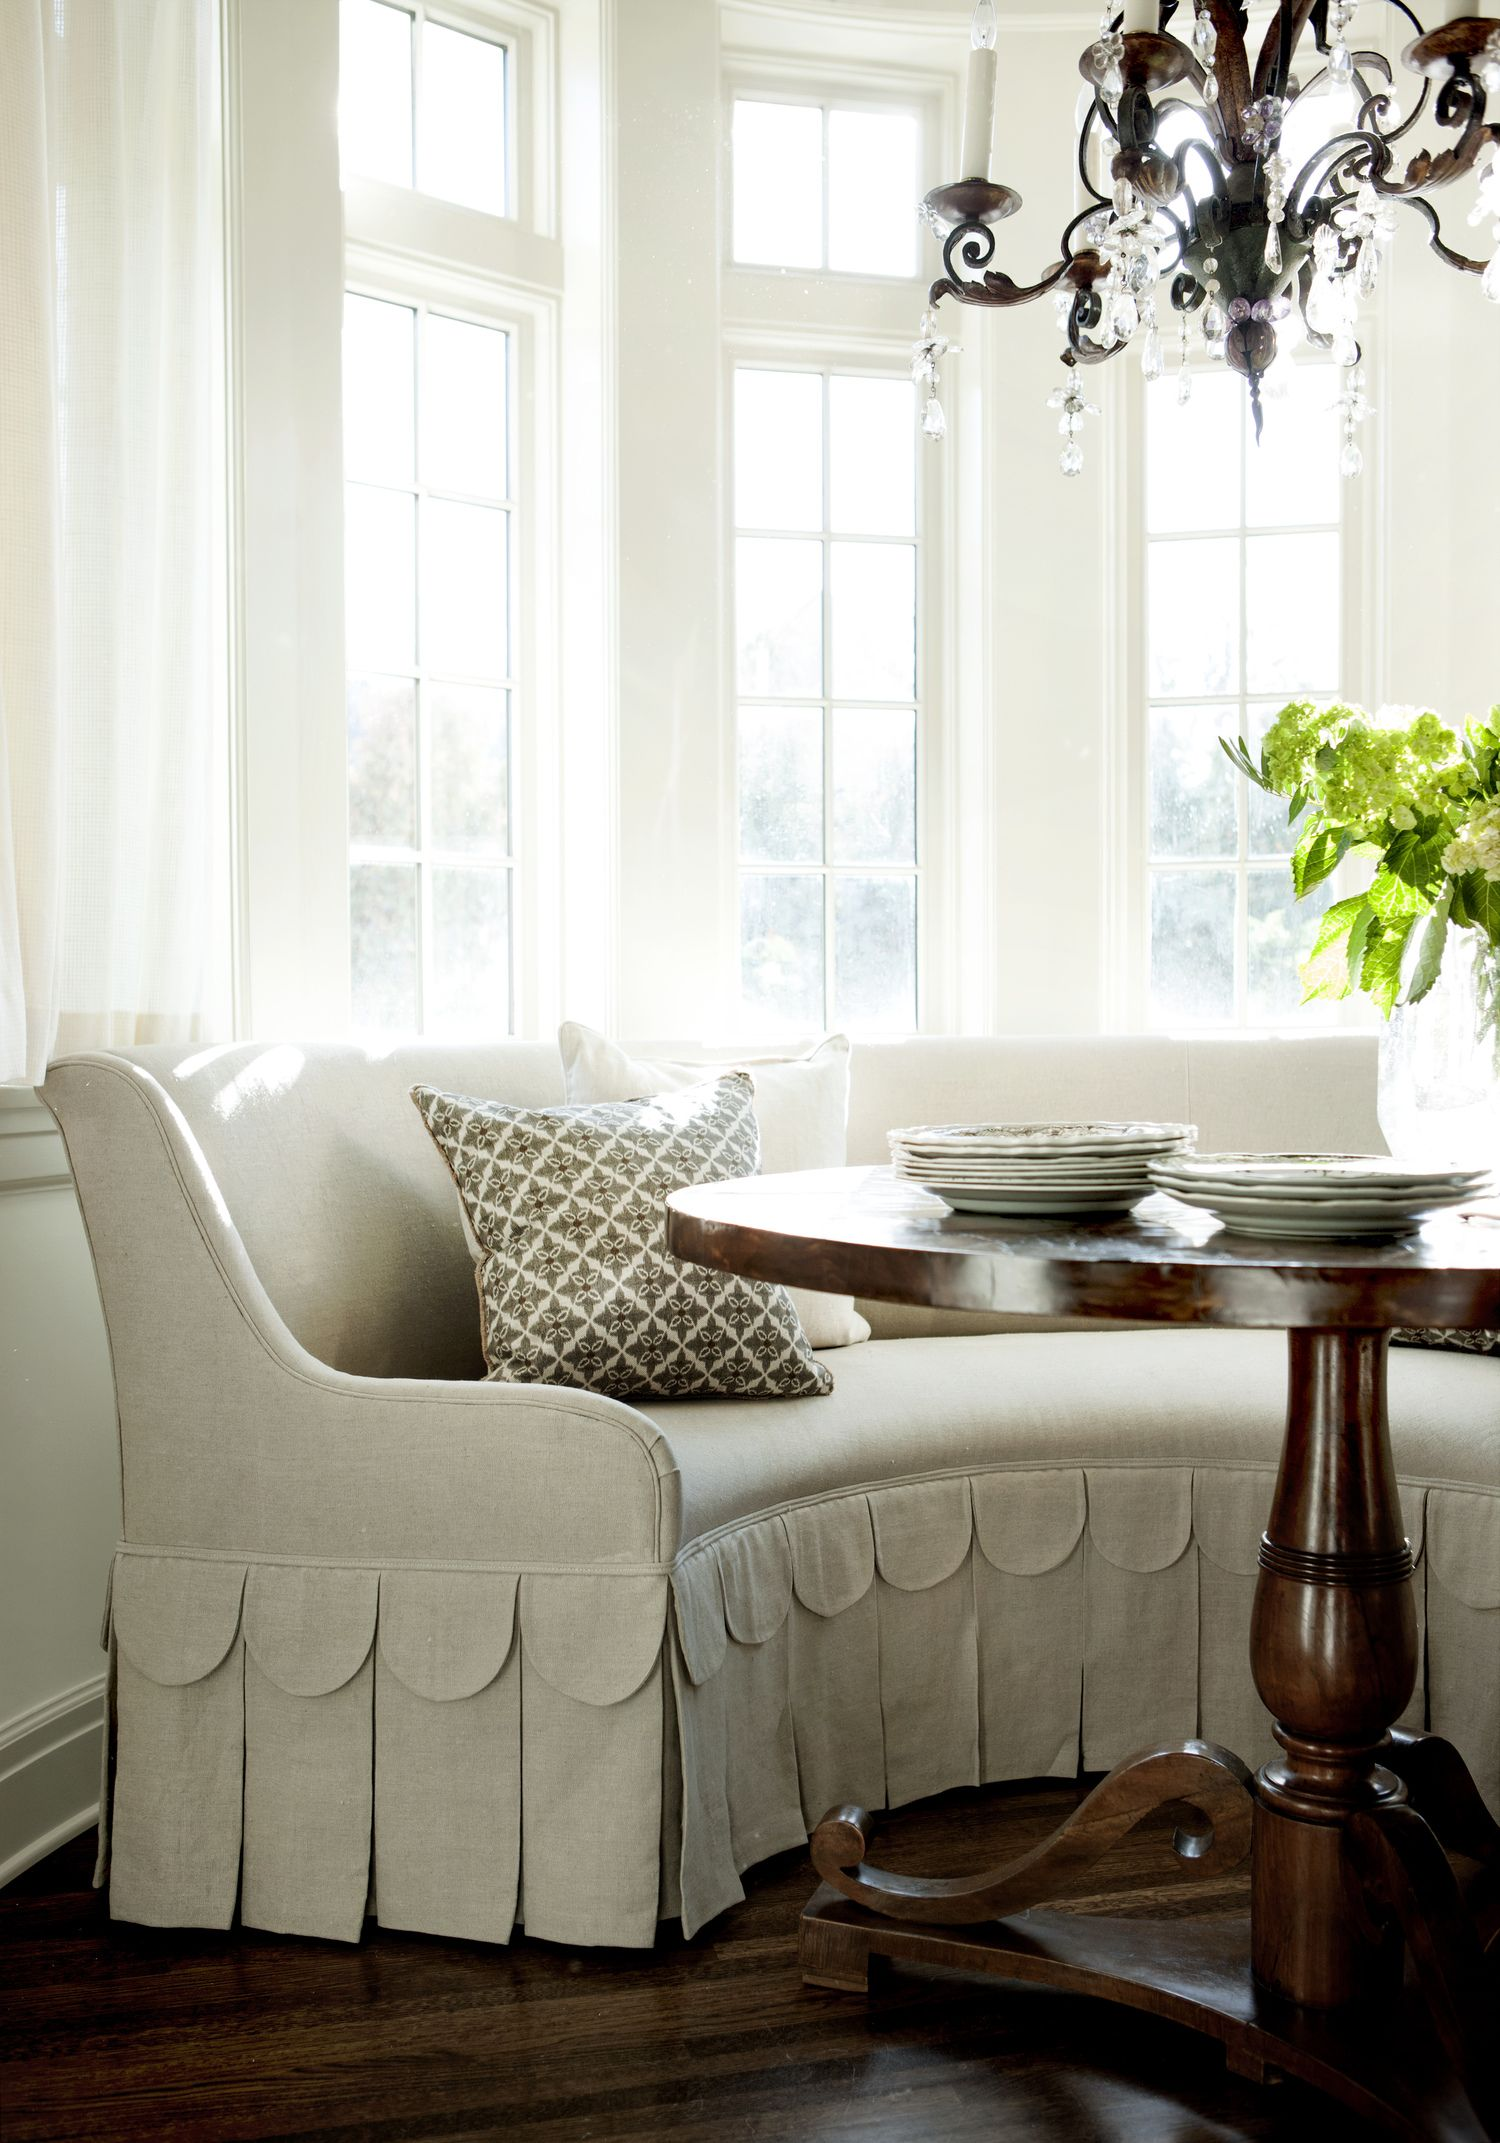 banquette ideas. kitchen dining. settee. curved bench with scallop